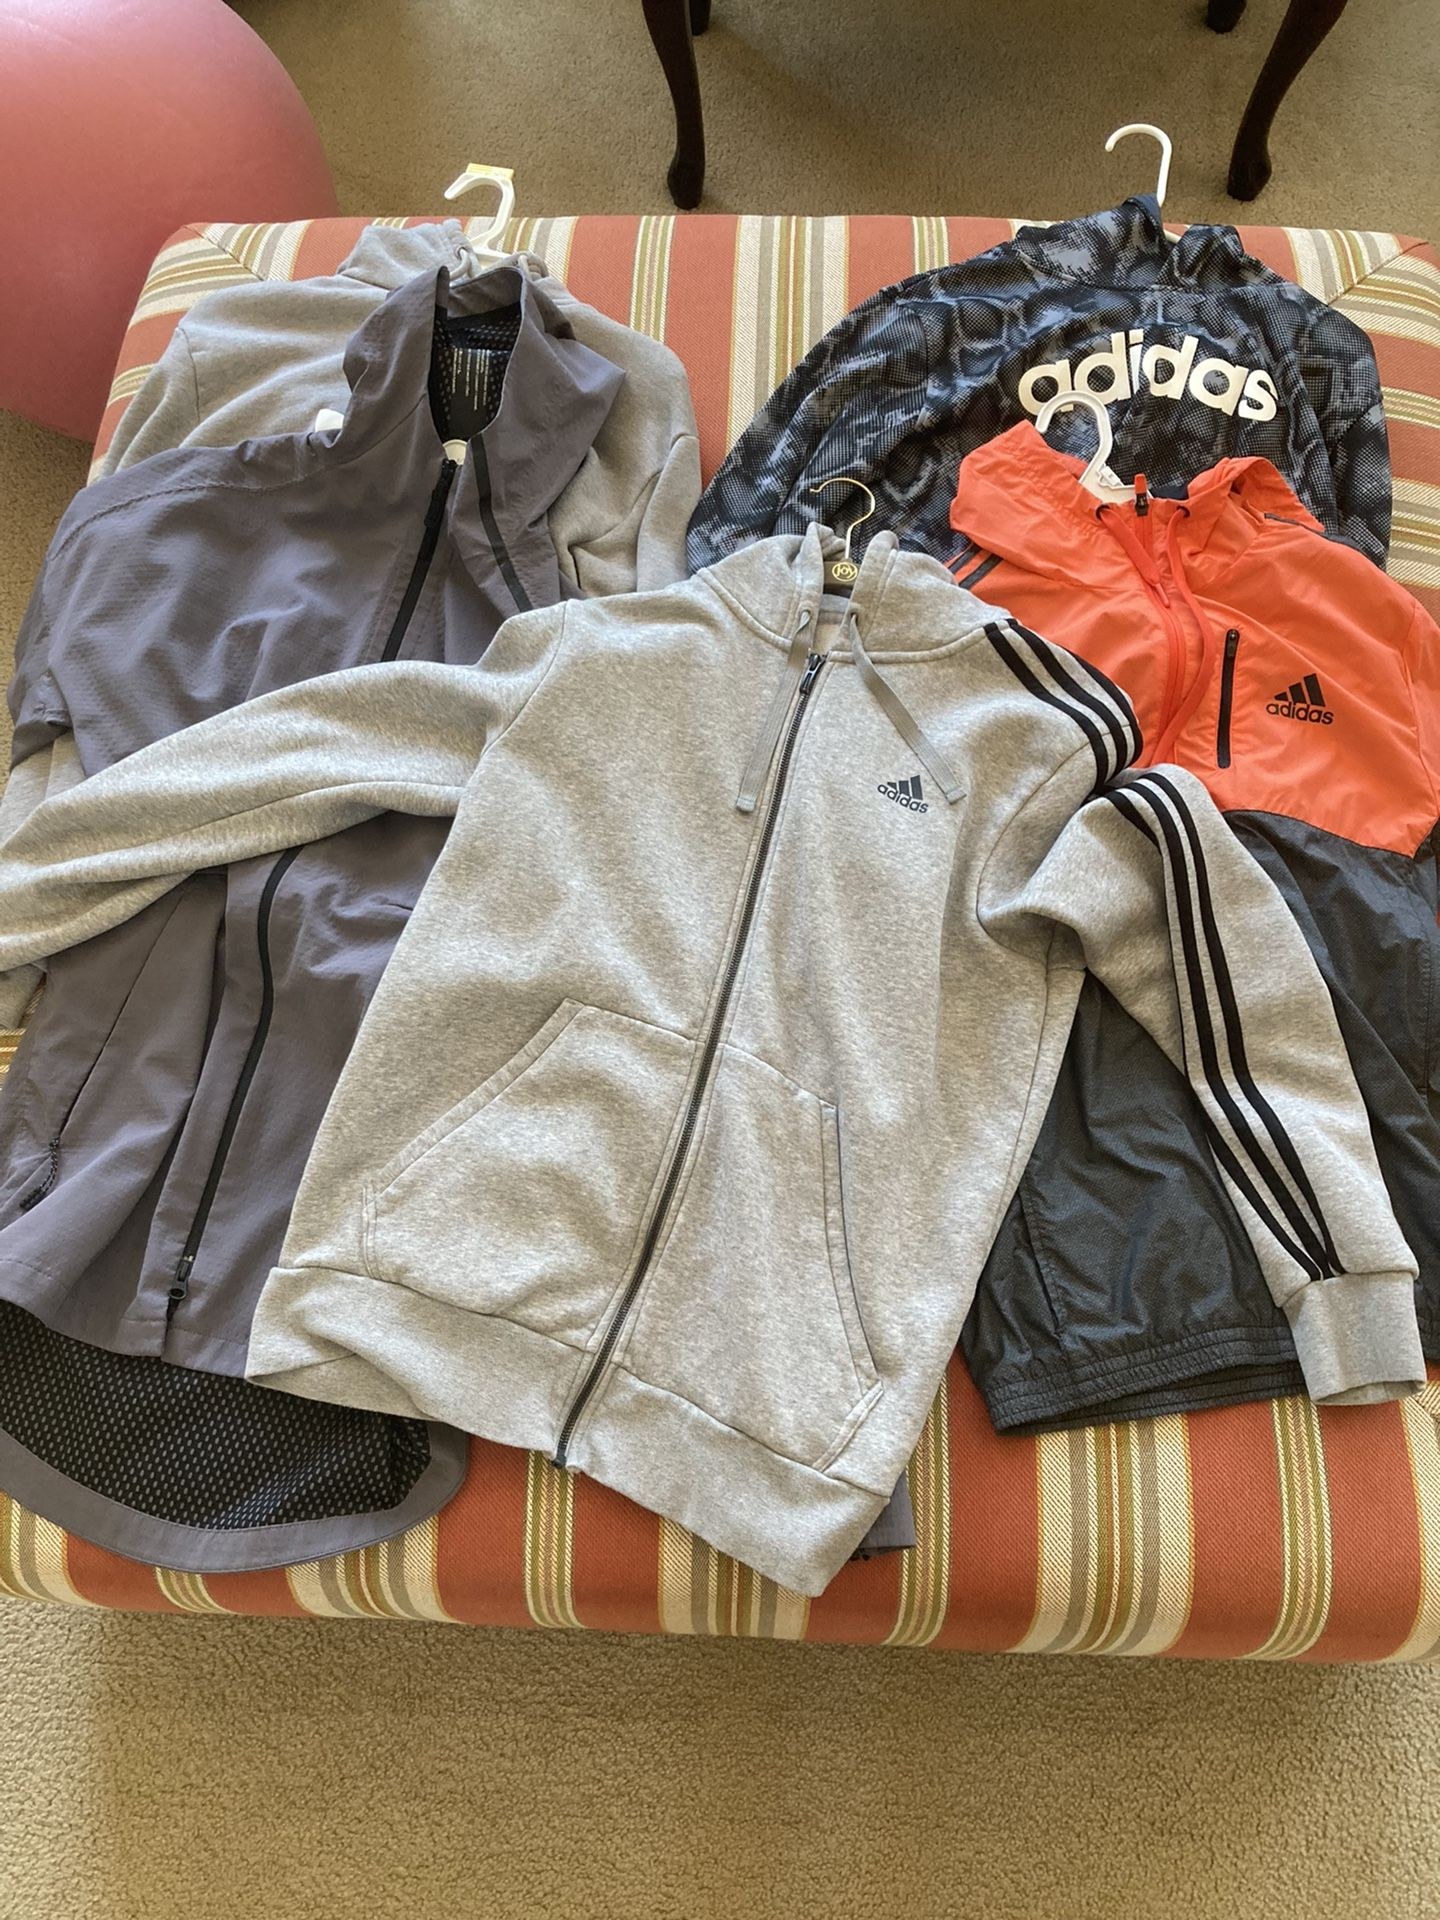 5 Adidas Jackets Size S And M